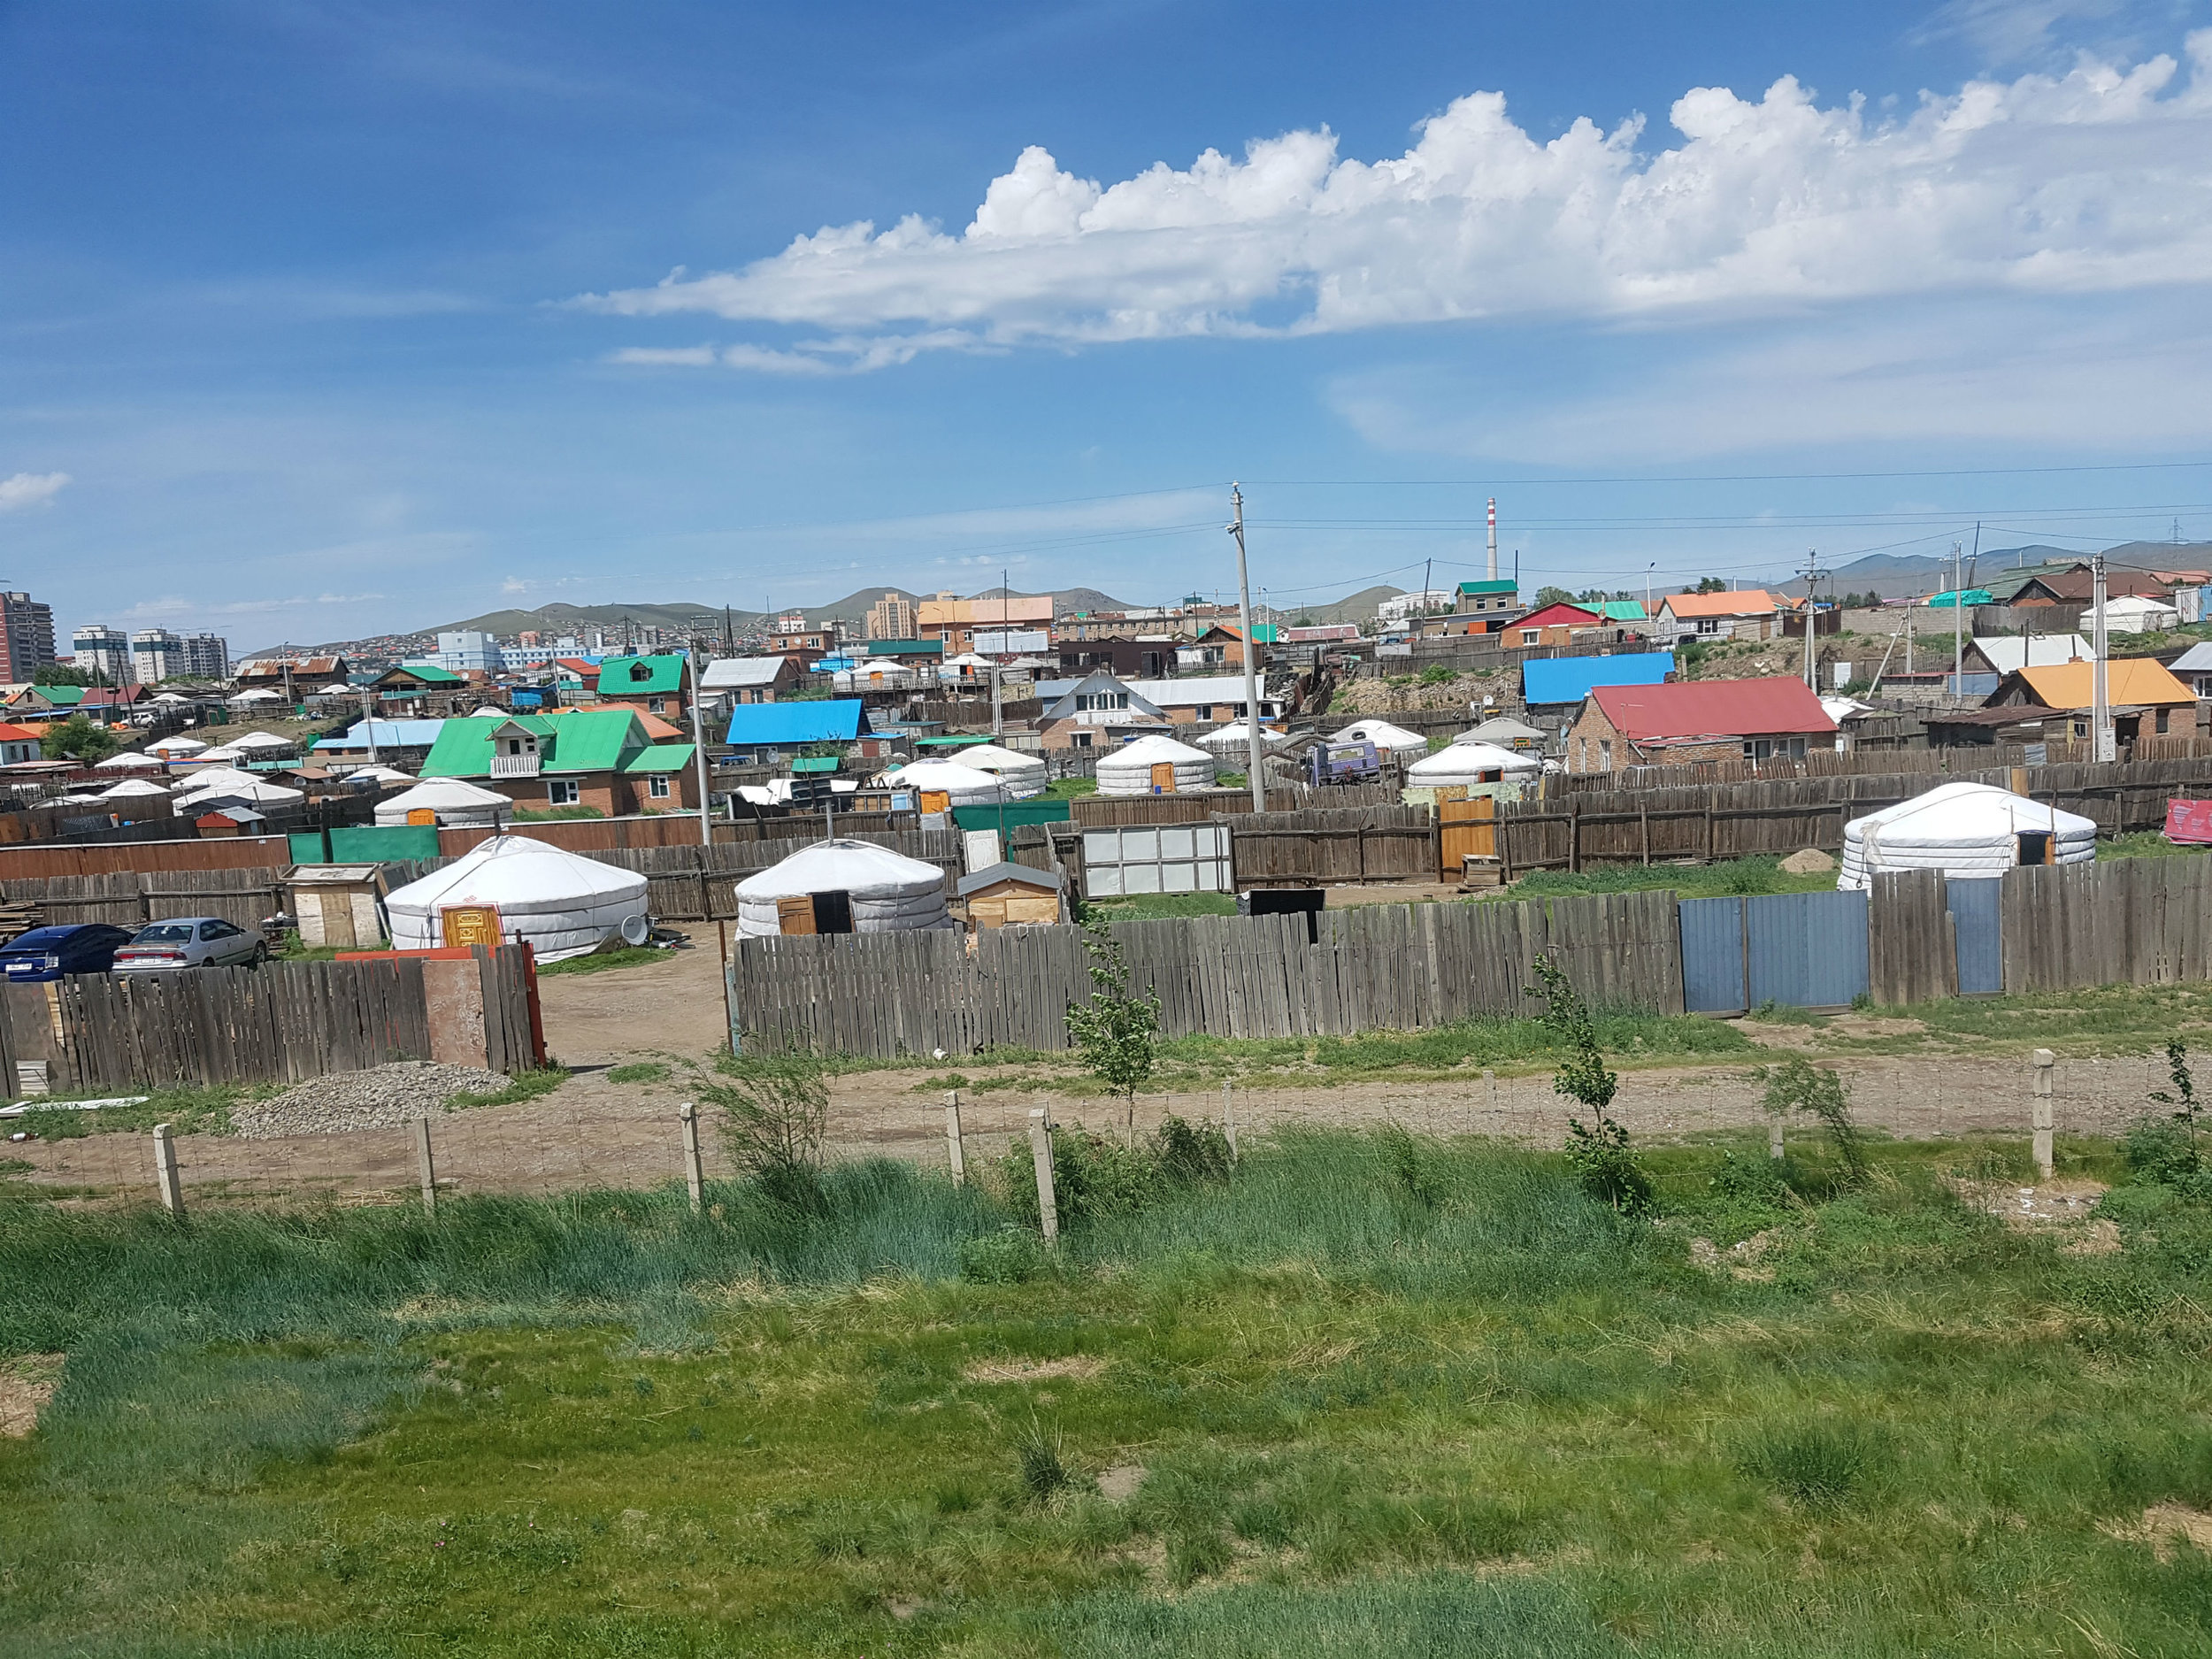 Ulaanbataar: note the gers of the nomadic people moving into the city